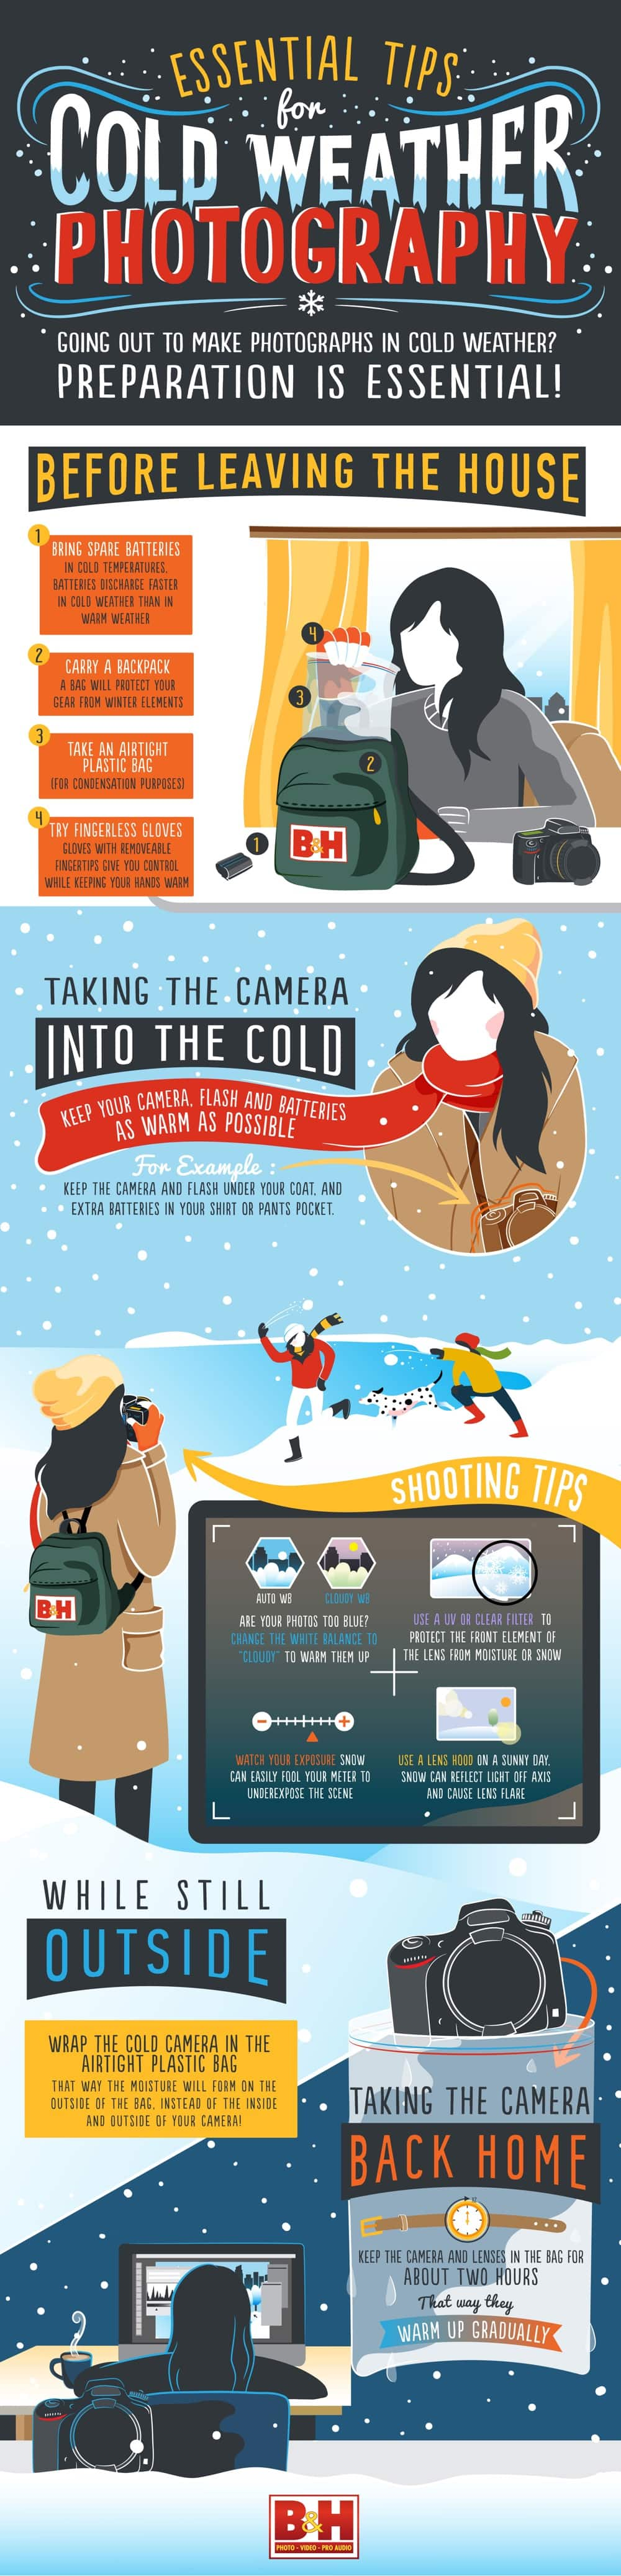 Cold Weather Photography - Tips for Shooting Photos in Cold Weather